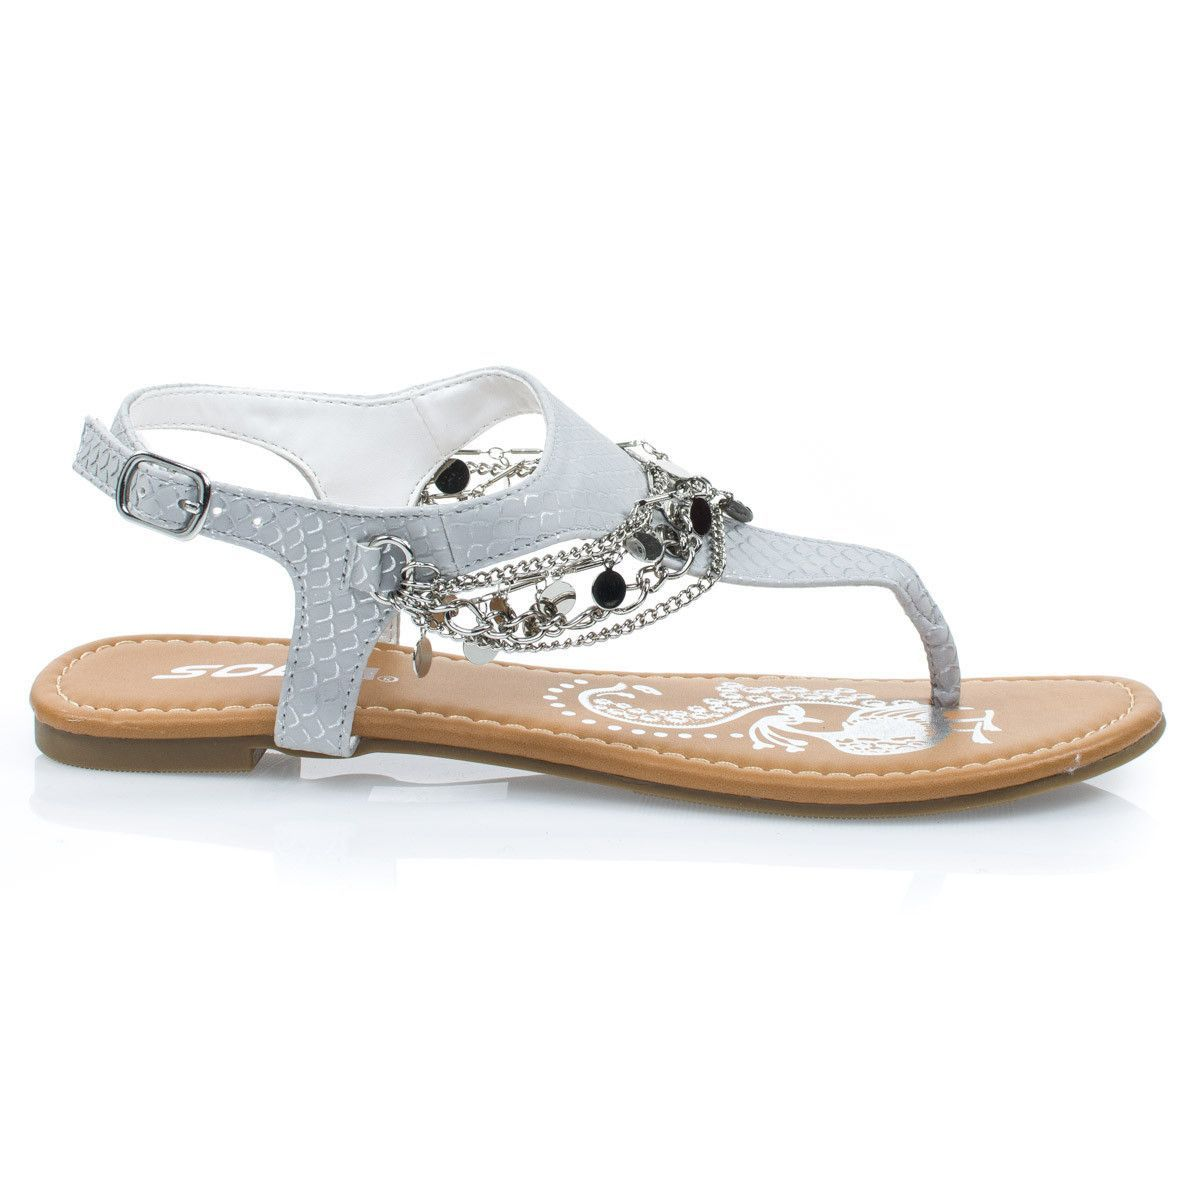 583af3e19  Above Silver Women s Metal Chain Flat Thong Sandal w Multi Colored Print    Sling Back Ankle Strap